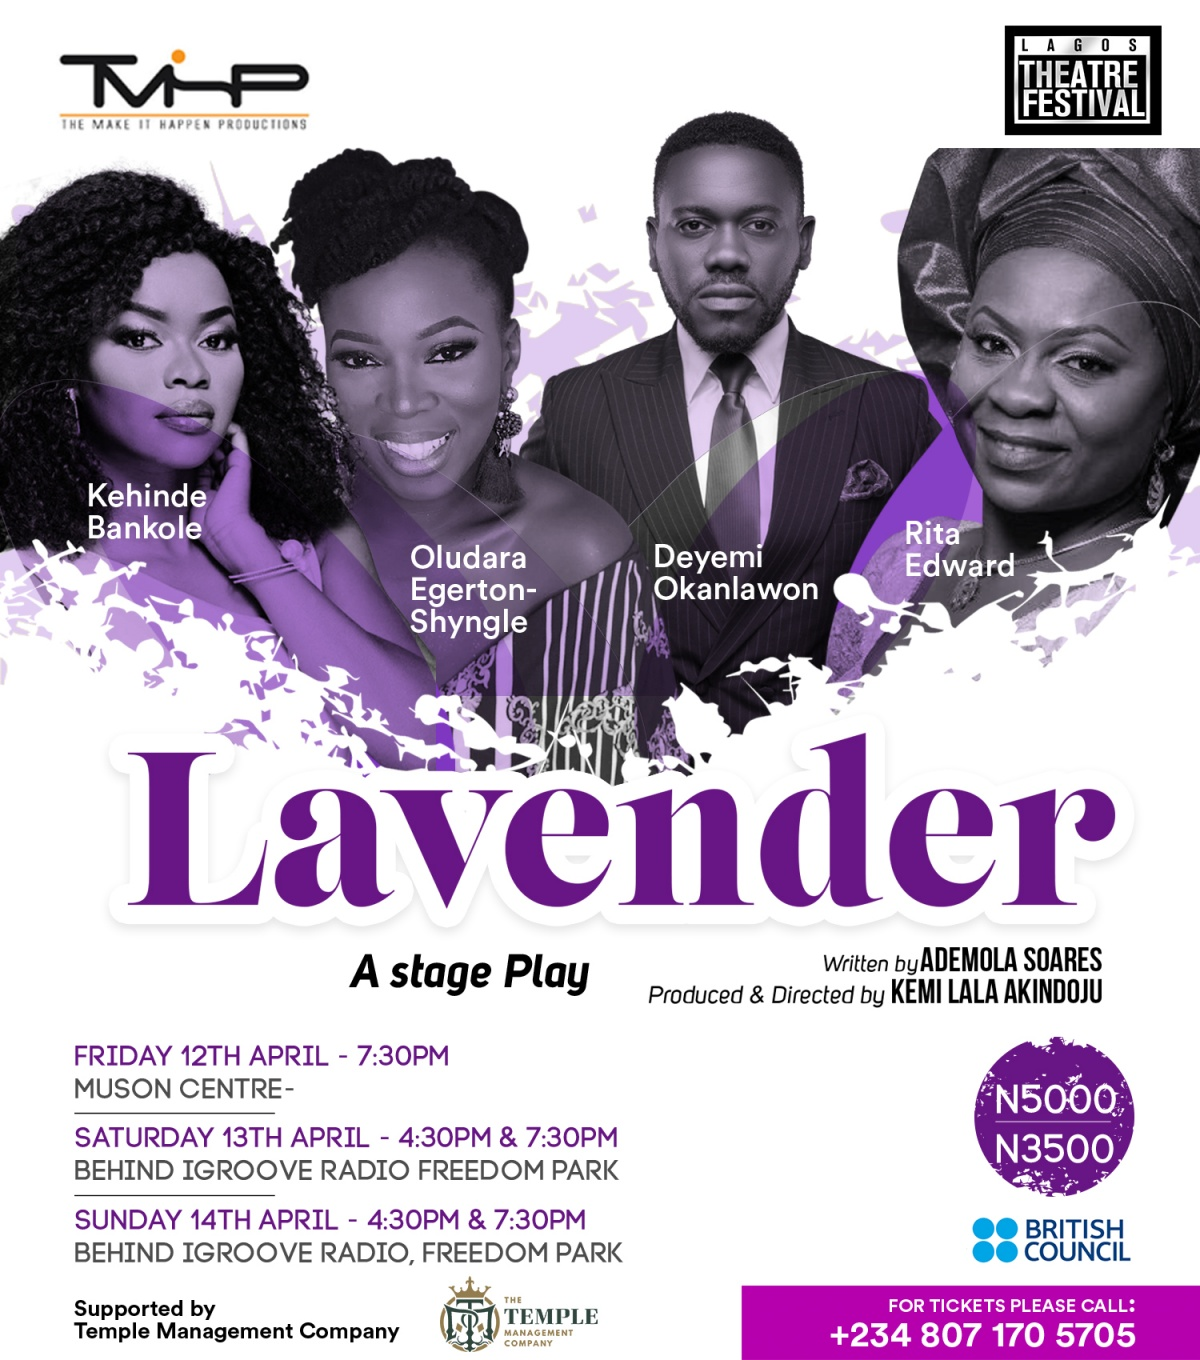 Lavender - A Stage Play by kemi lala akindoju